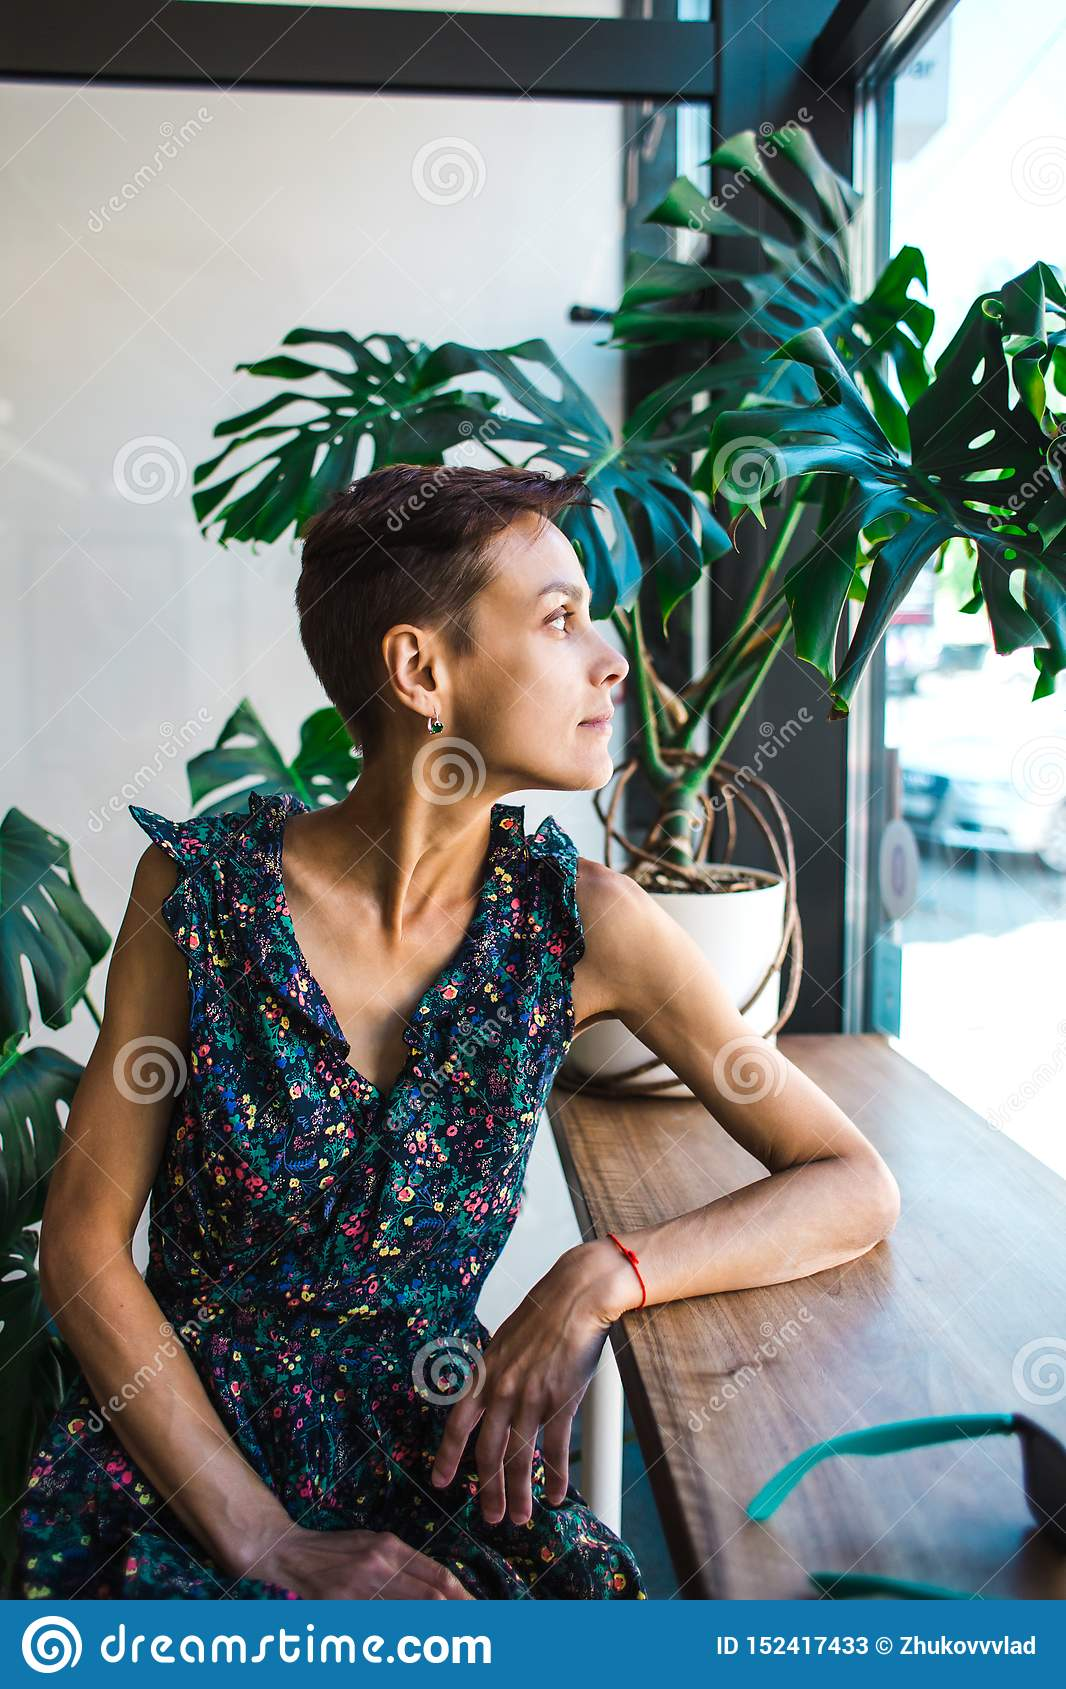 A woman with short hair dreamily looks out the window